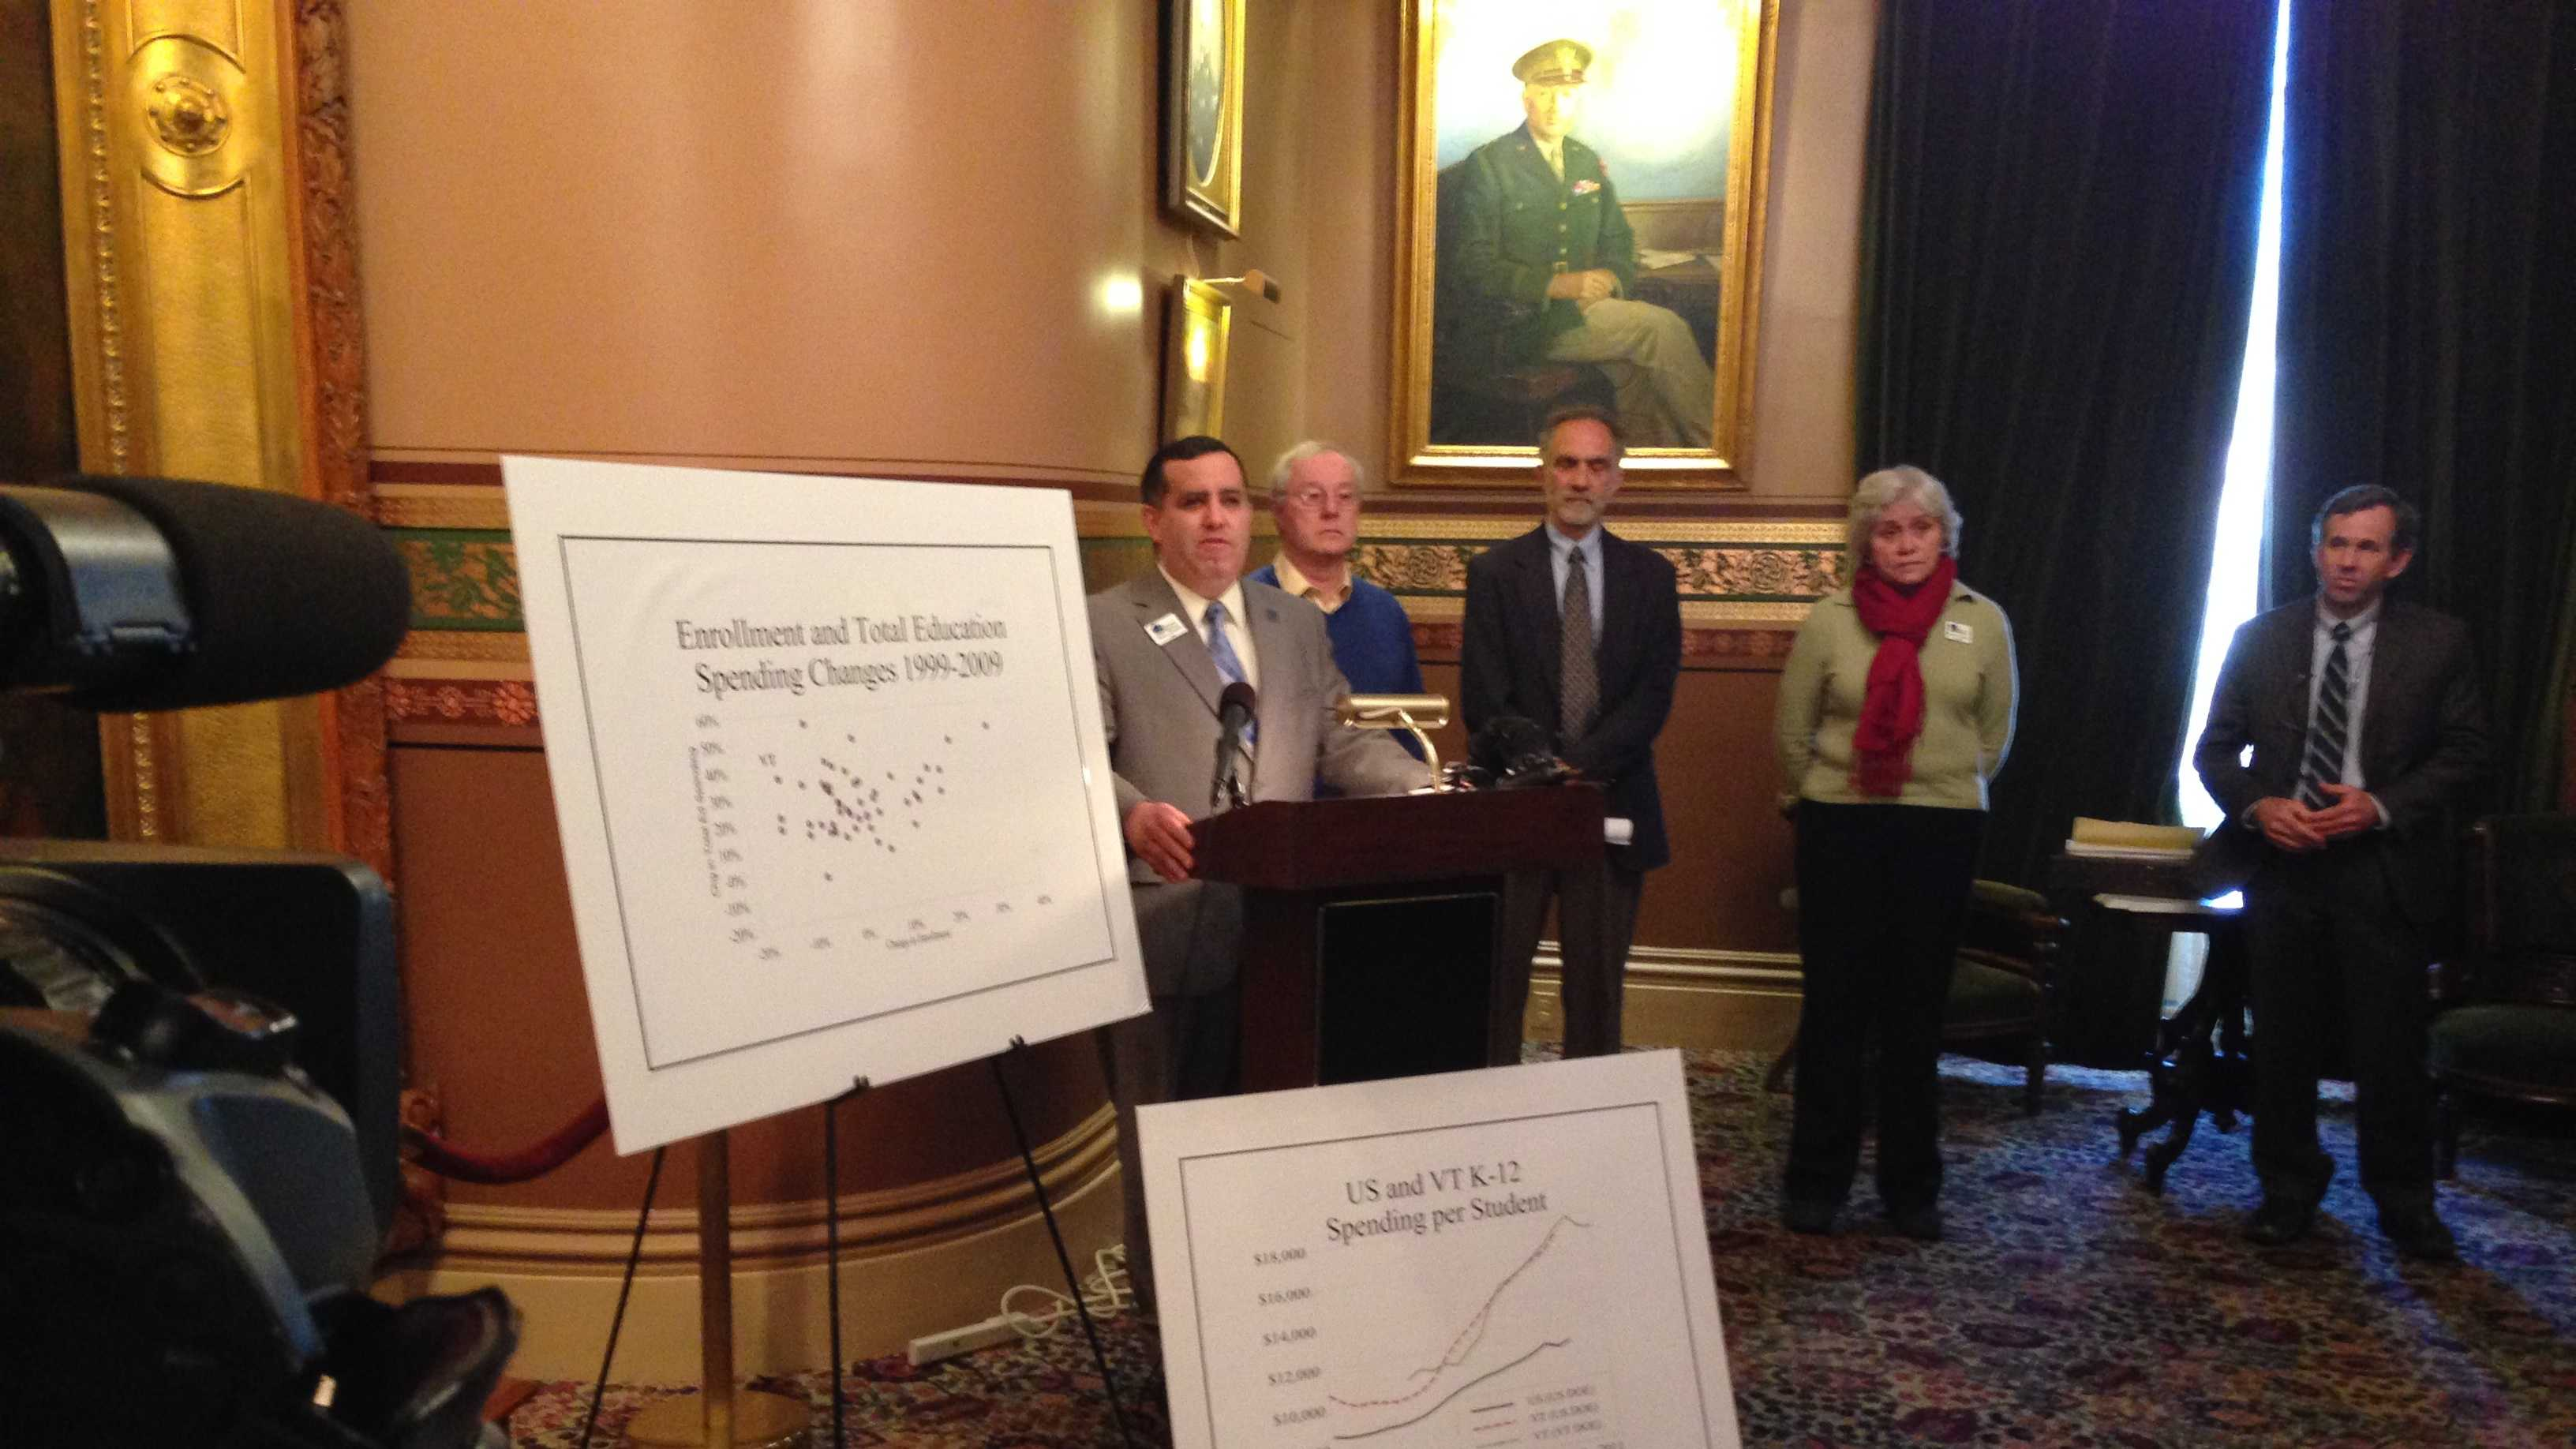 Realtors economists news conference - img